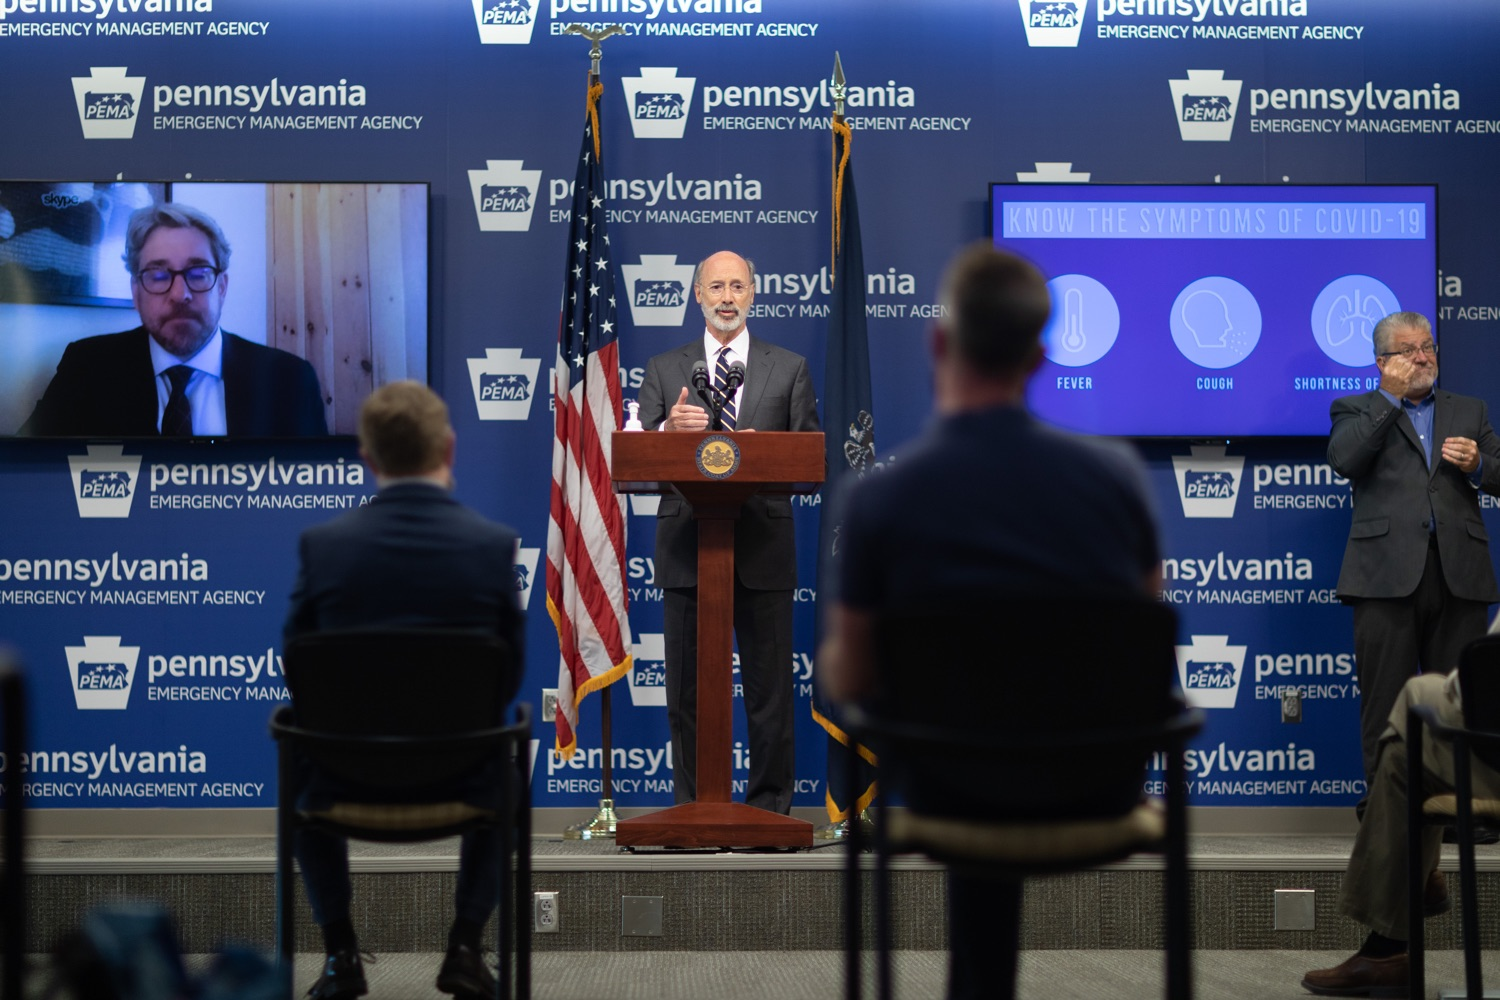 """<a href=""""https://filesource.wostreaming.net/commonwealthofpa/photo/18165_GOV_covid_mitigation_dz_13.jpg"""" target=""""_blank"""">⇣Download Photo<br></a>Pennsylvania Governor Tom Wolf speaking with the press. Governor Tom Wolf and Sec. of Health Dr. Rachel Levine today signed new orders for targeted mitigation efforts in response to the recent rise in COVID cases, primarily in southwest Pennsylvania, but also in other counties in the state, influencing the decision for statewide mitigation efforts for bars and restaurants, gatherings and telework. The new orders take effect at 12:01 a.m., Thursday, July 16, 2020.  Harrisburg, - July 15, 2020"""